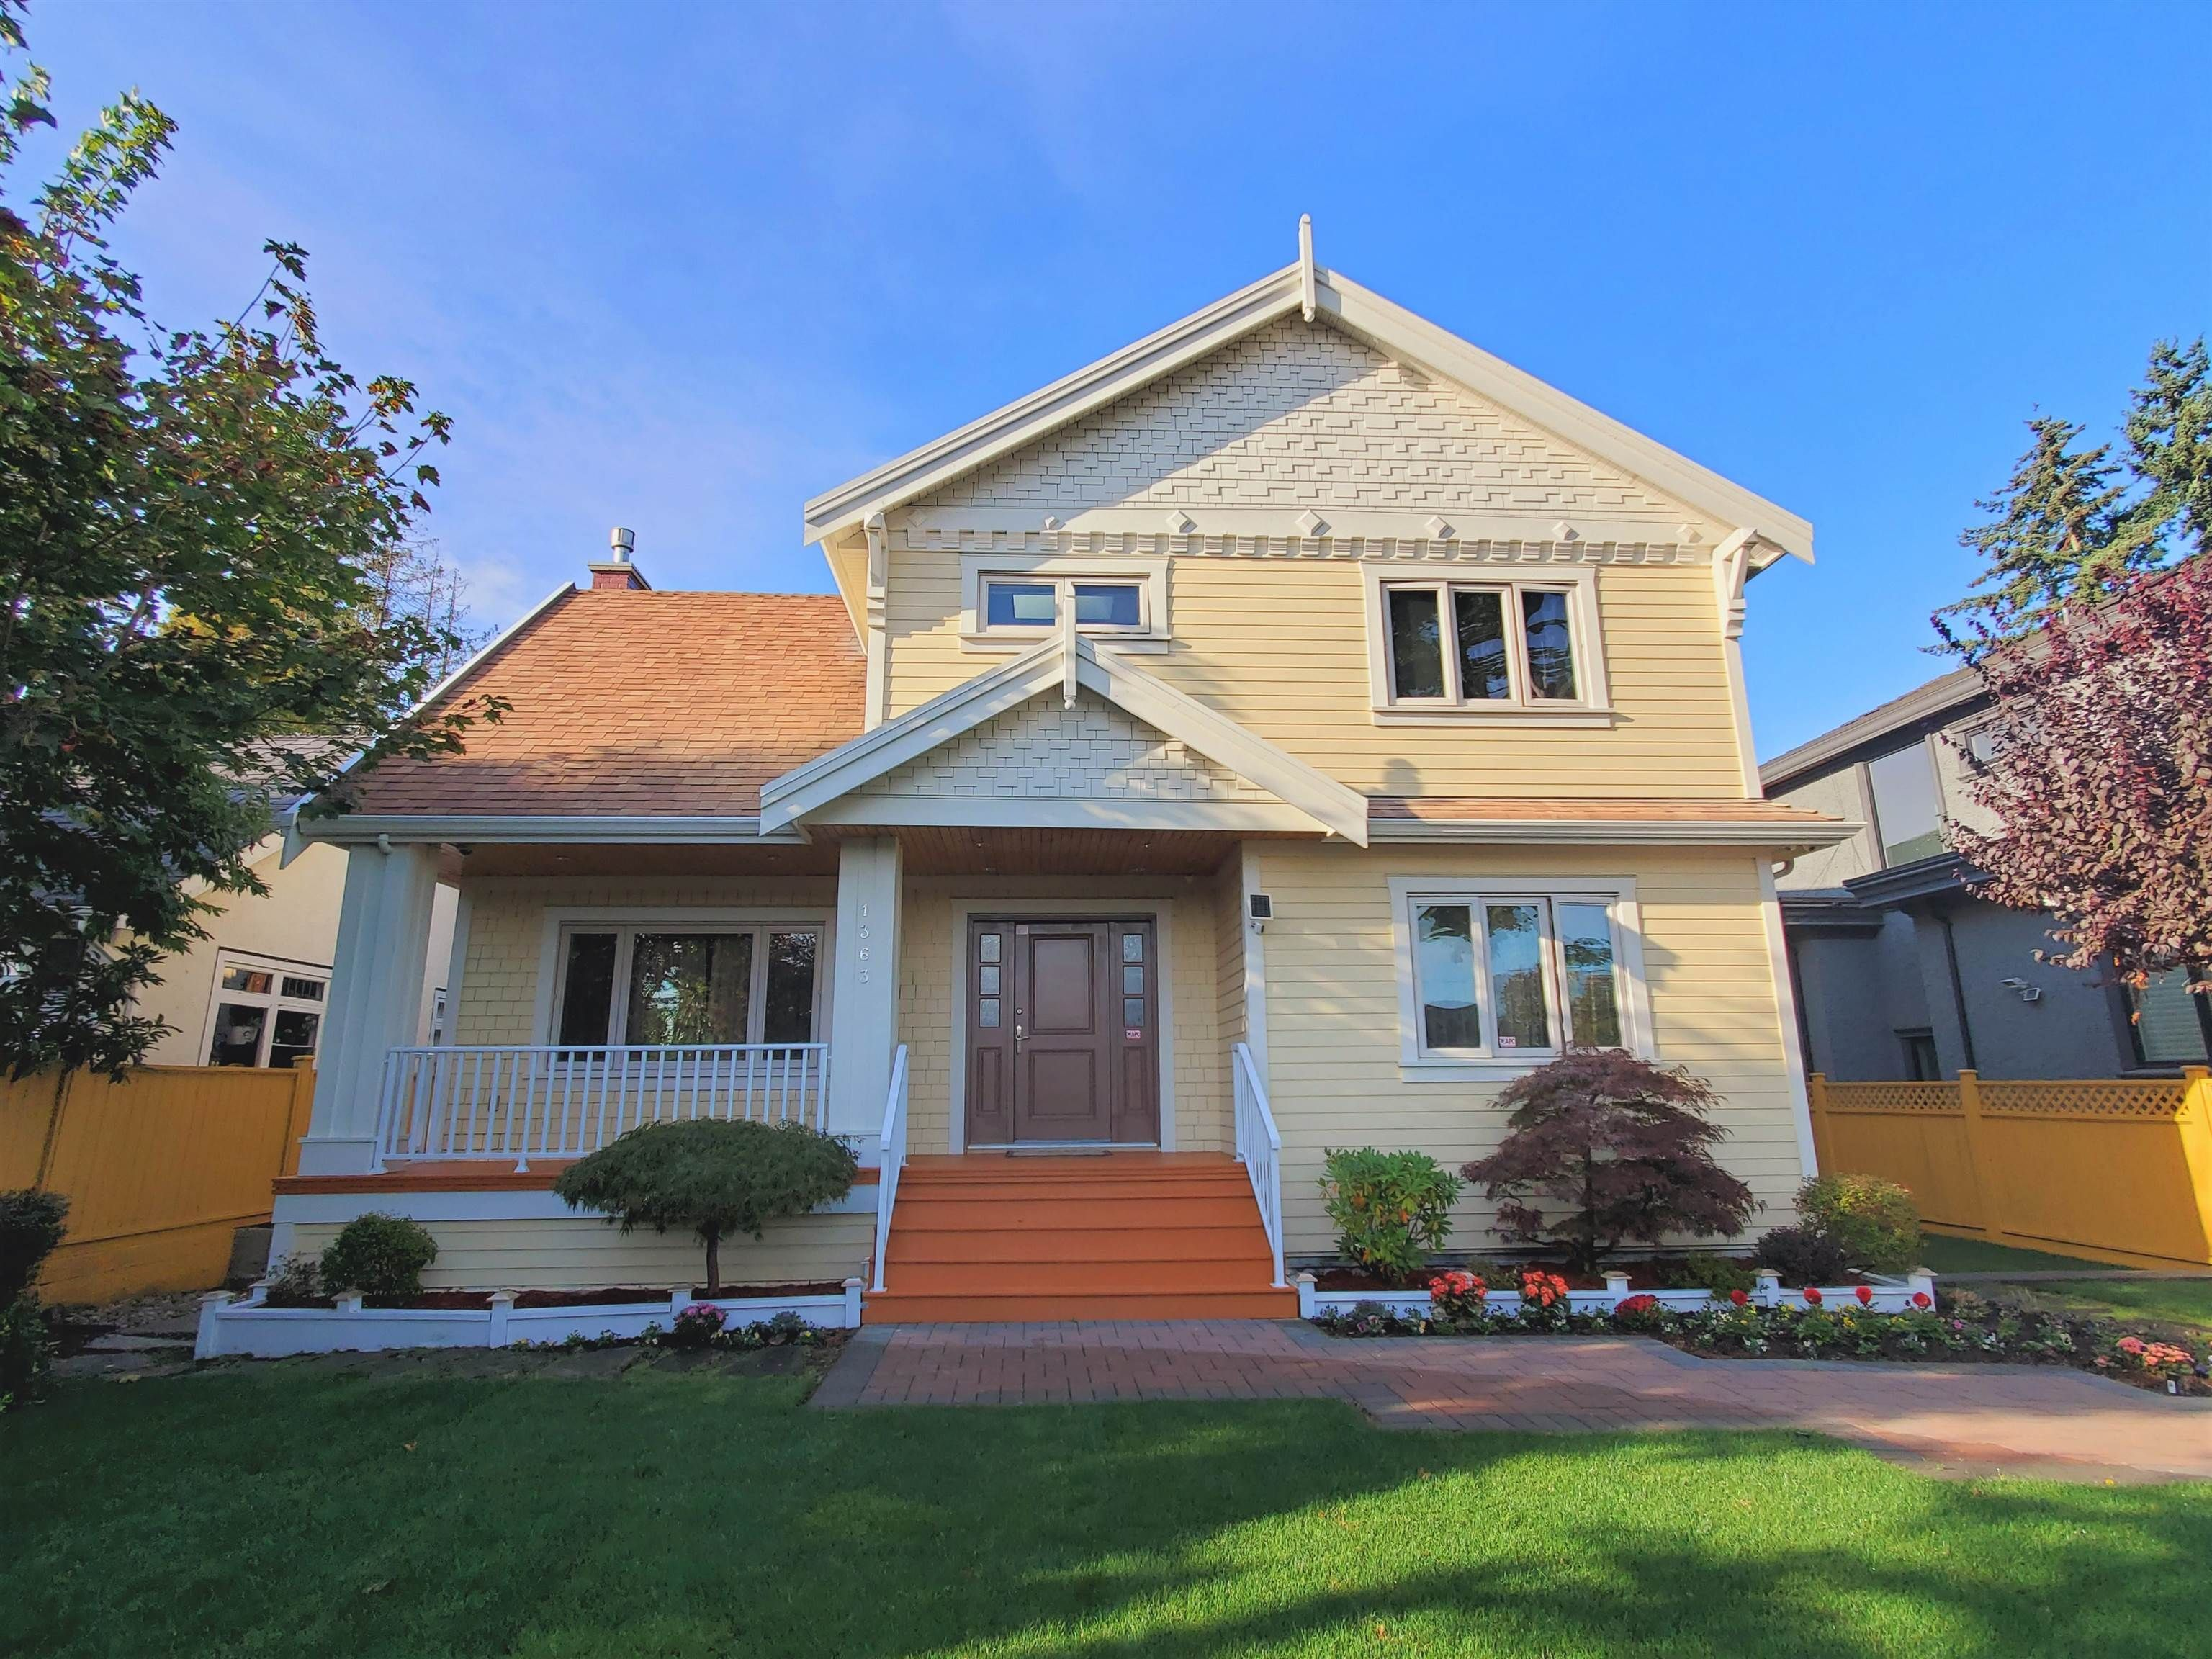 Main Photo: 1363 W 57TH Avenue in Vancouver: South Granville House for sale (Vancouver West)  : MLS®# R2616722